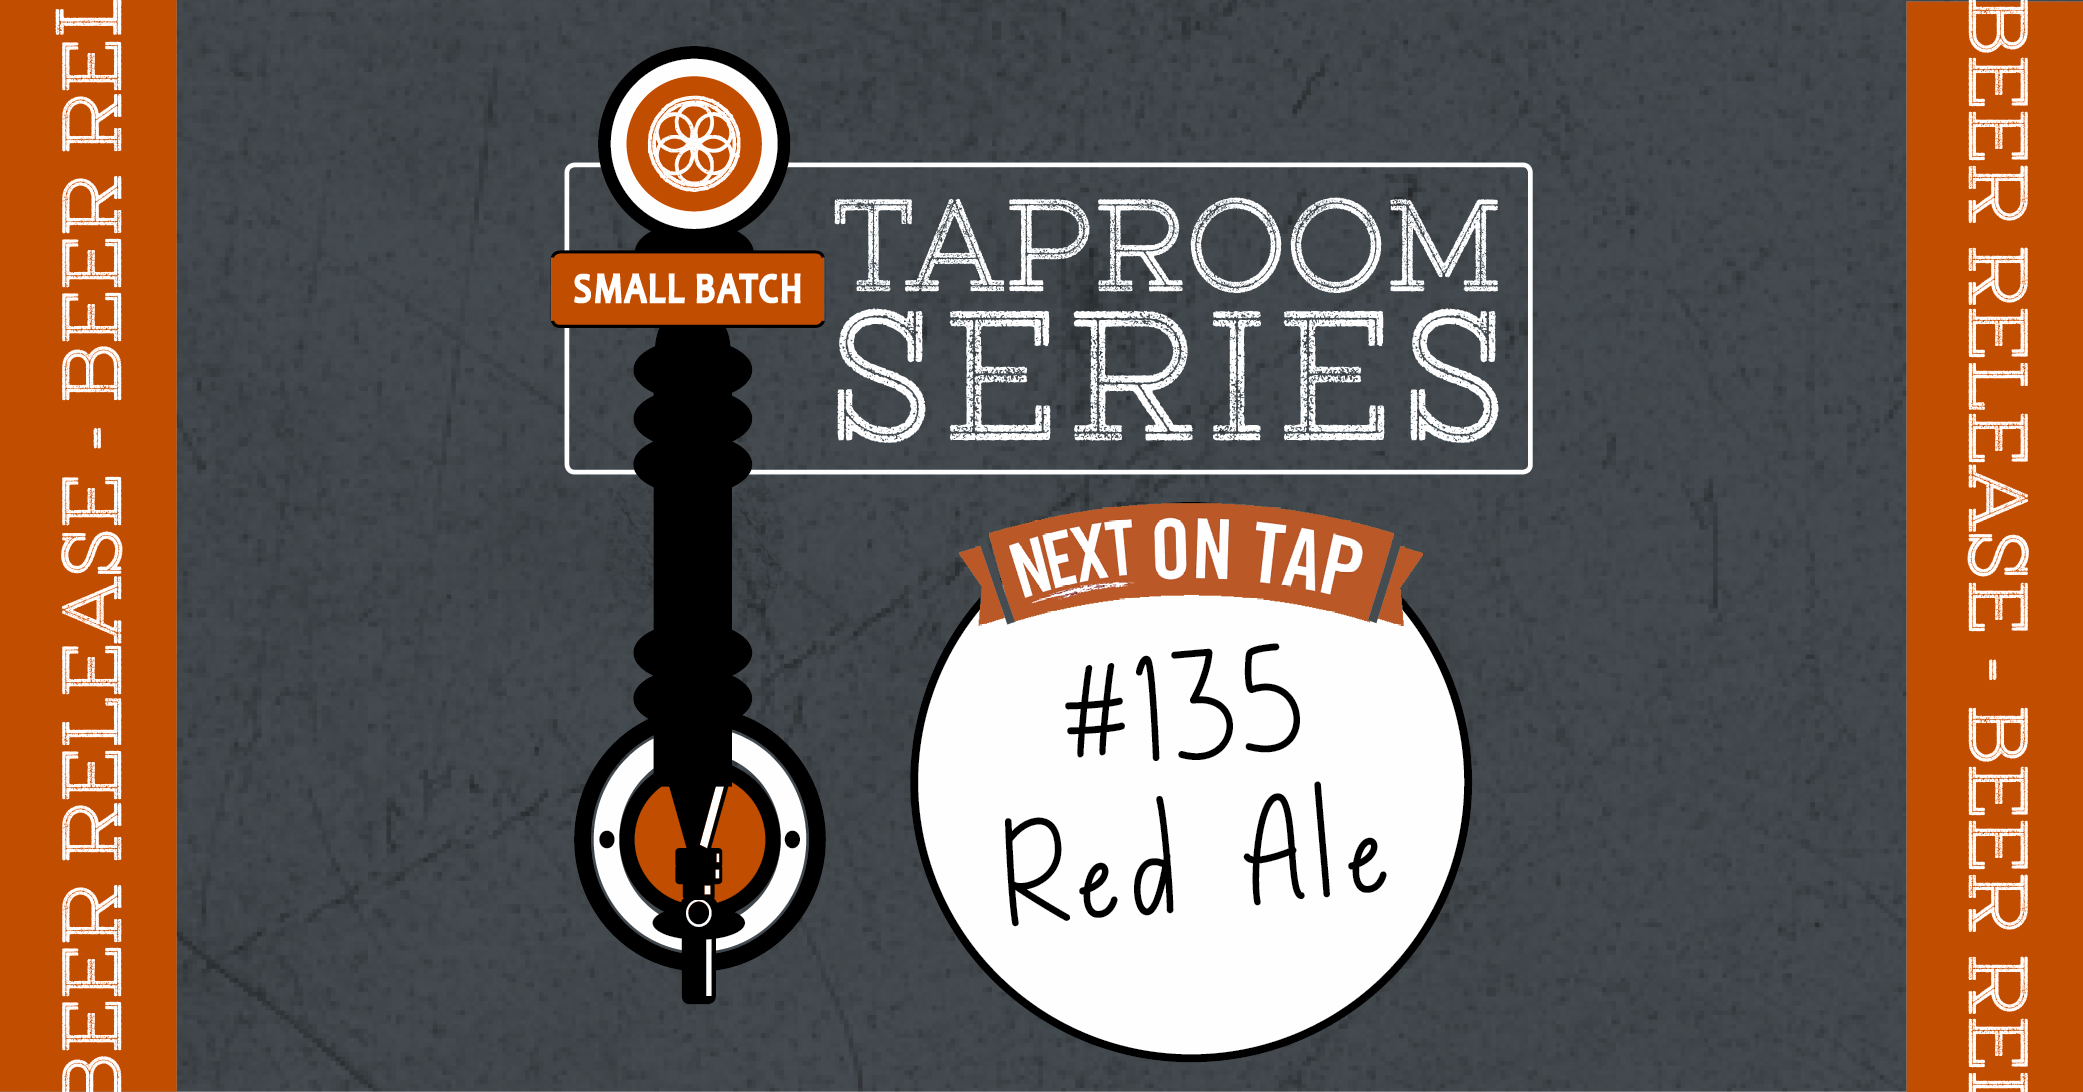 Taproom Series_FB Event Cover_135 Red Ale.png